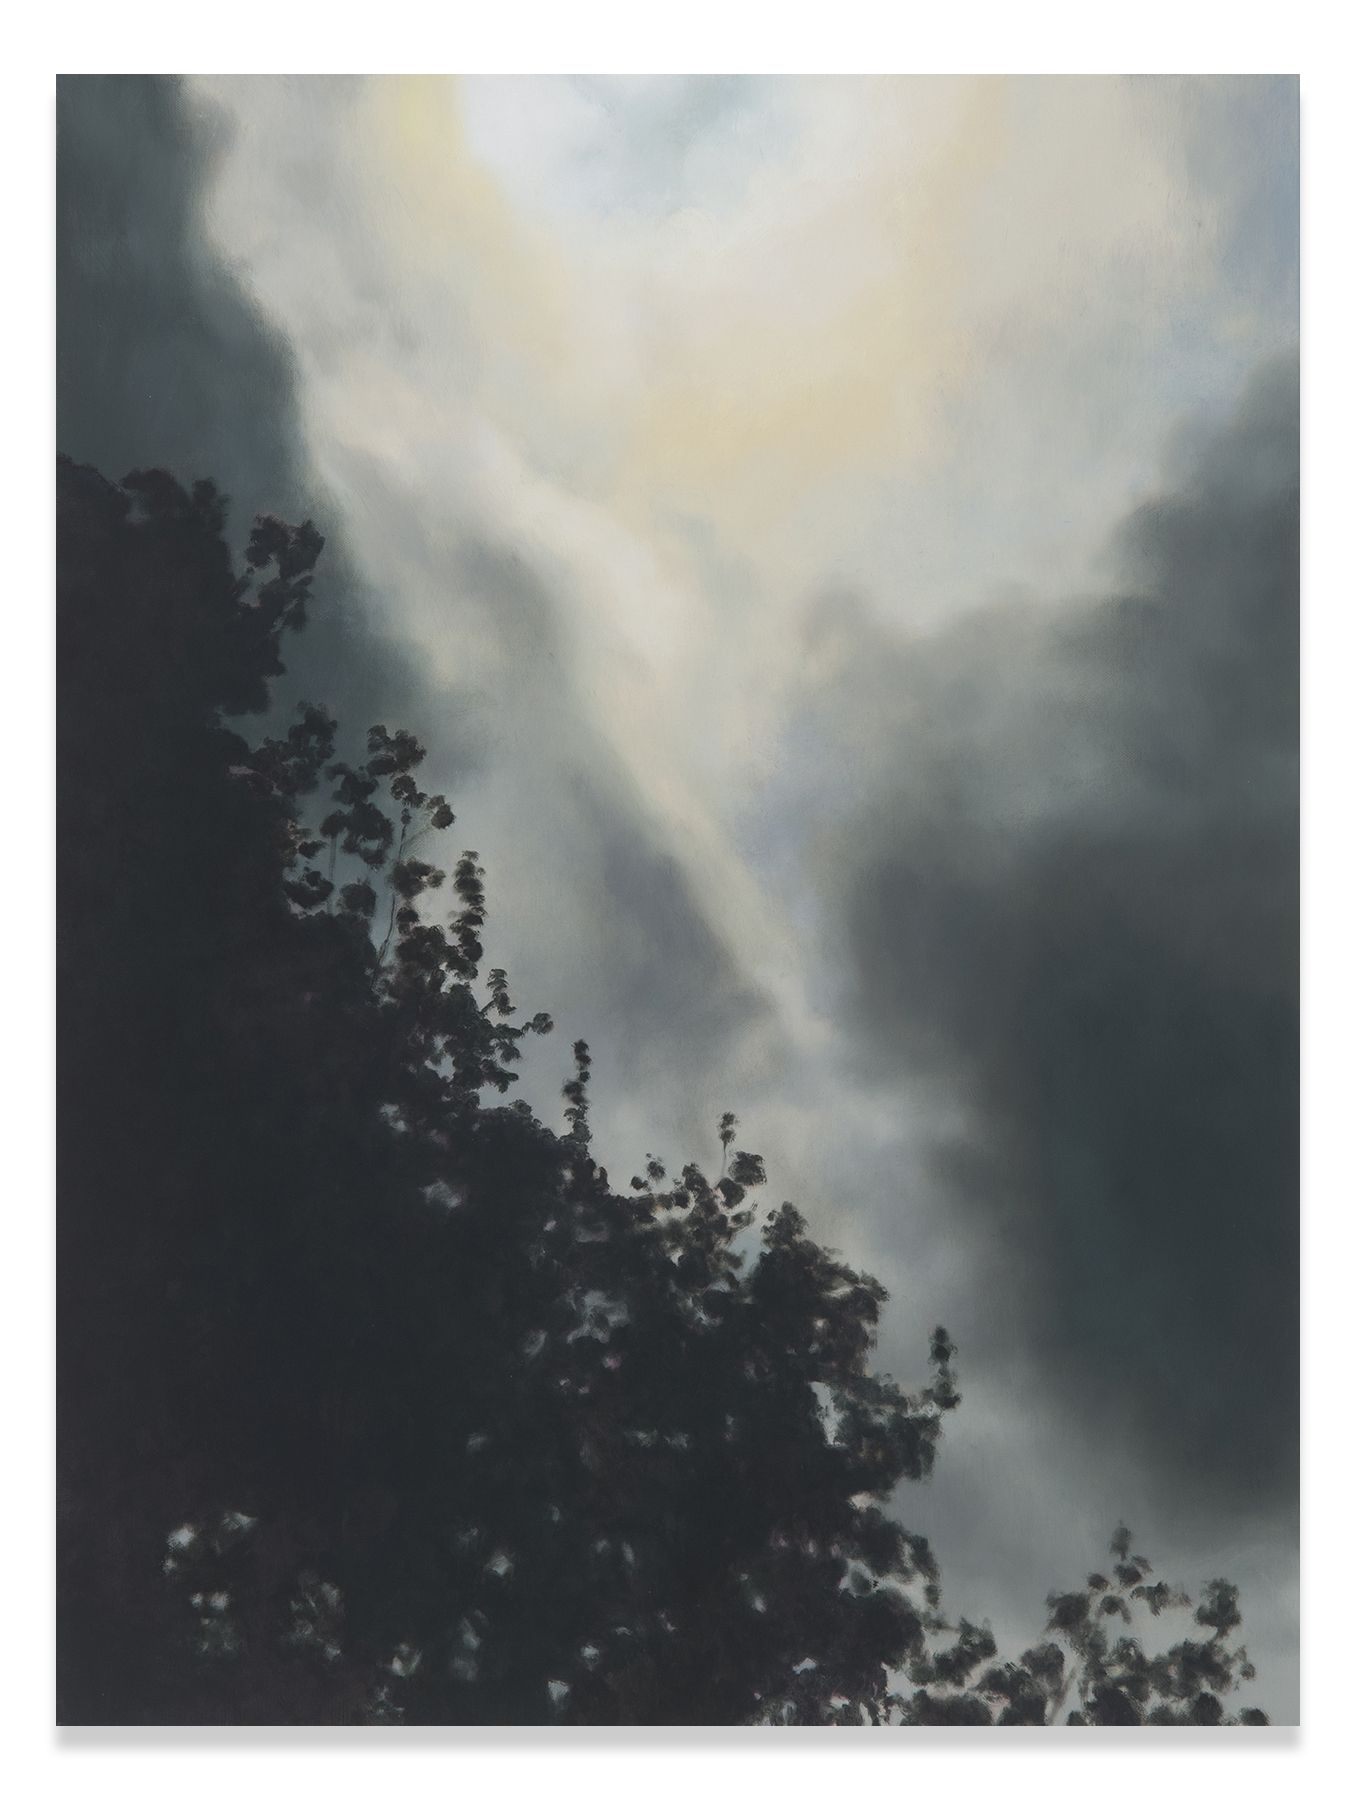 Creation Storm, 2017,Oil on linen,32 x 24 inches,81.3 x 61 cm,MMG#30412